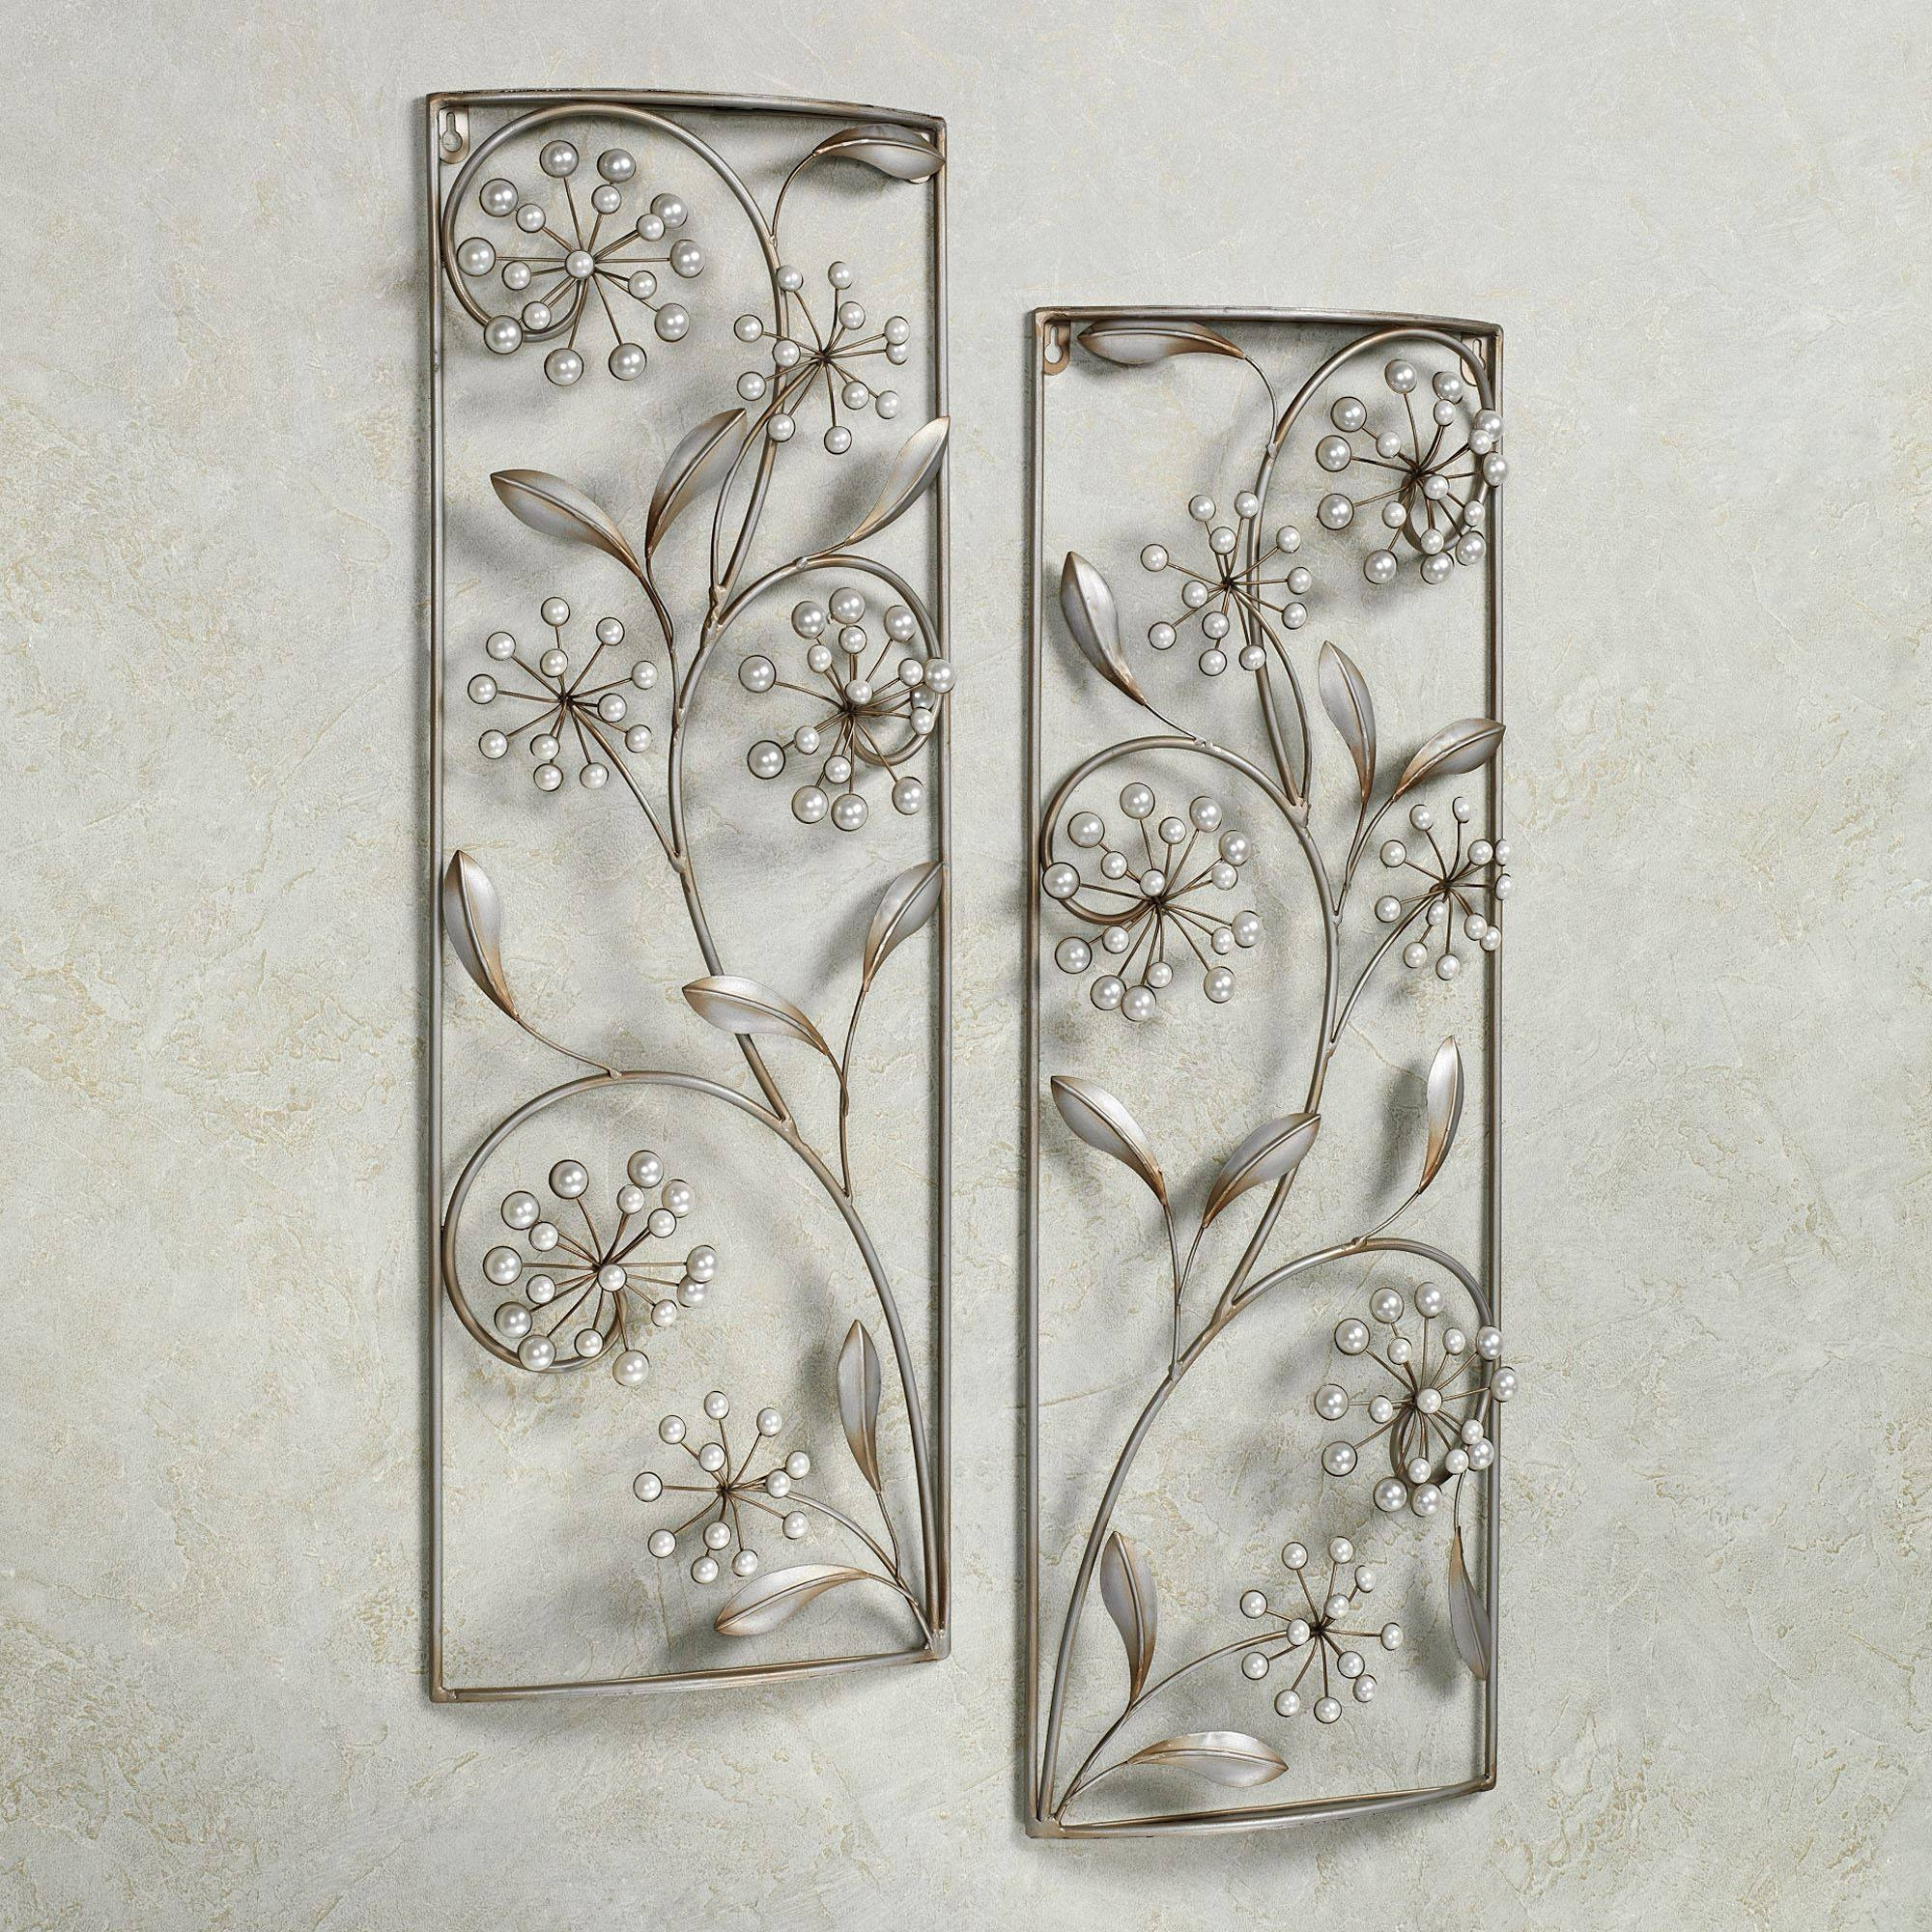 Scenic Metal Wall Decor Ideas Outdoor Metal Wall Art Metald Decor For Most Recent Silver Metal Wall Art Flowers (View 6 of 20)